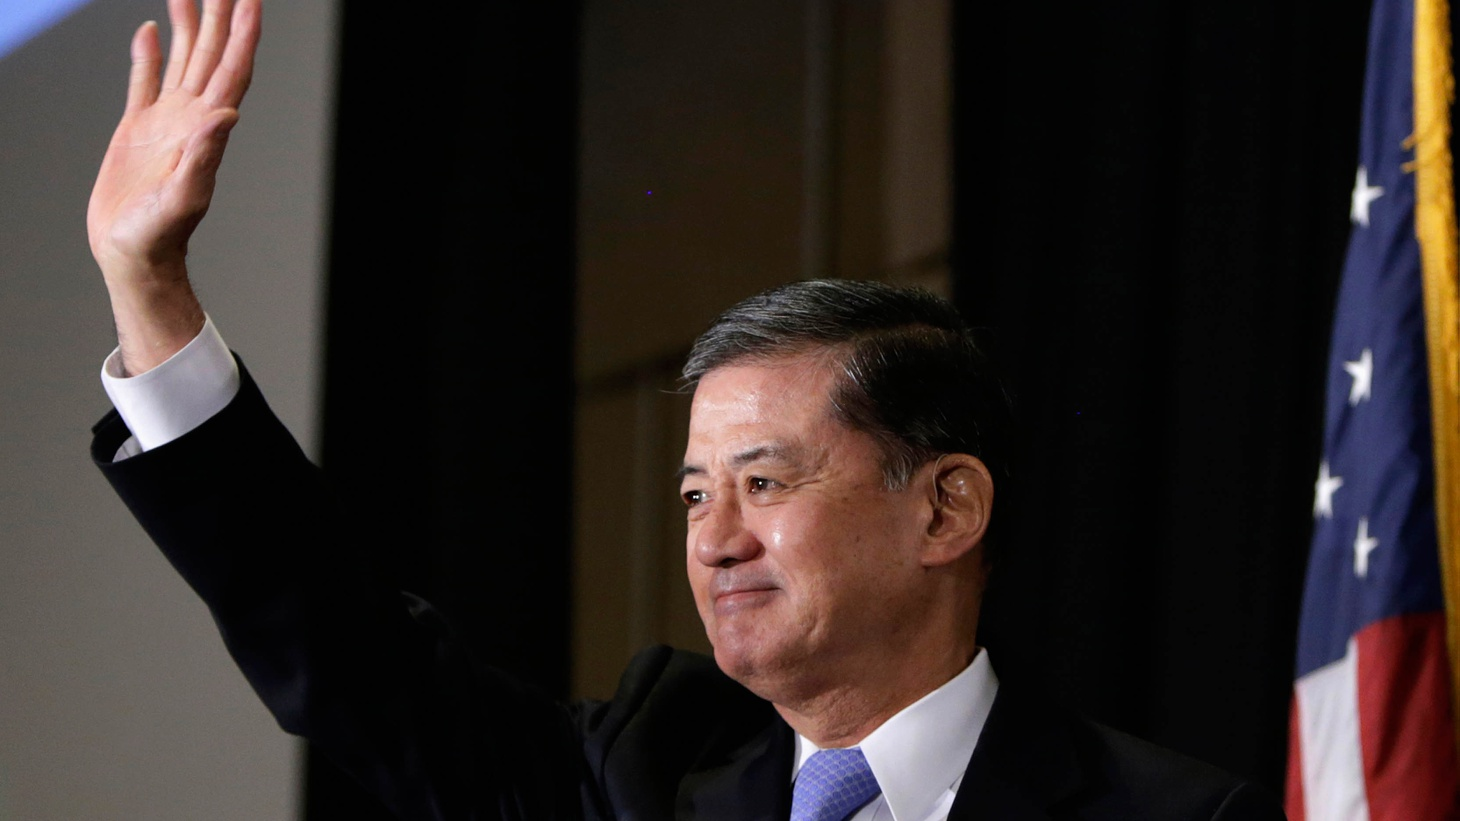 Veteran Affairs Secretary Eric Shinseki resigns, Steve Ballmer buys the Clippers, buying prescription drugs on Amazon, updates on schools, and our Friday film roundup.